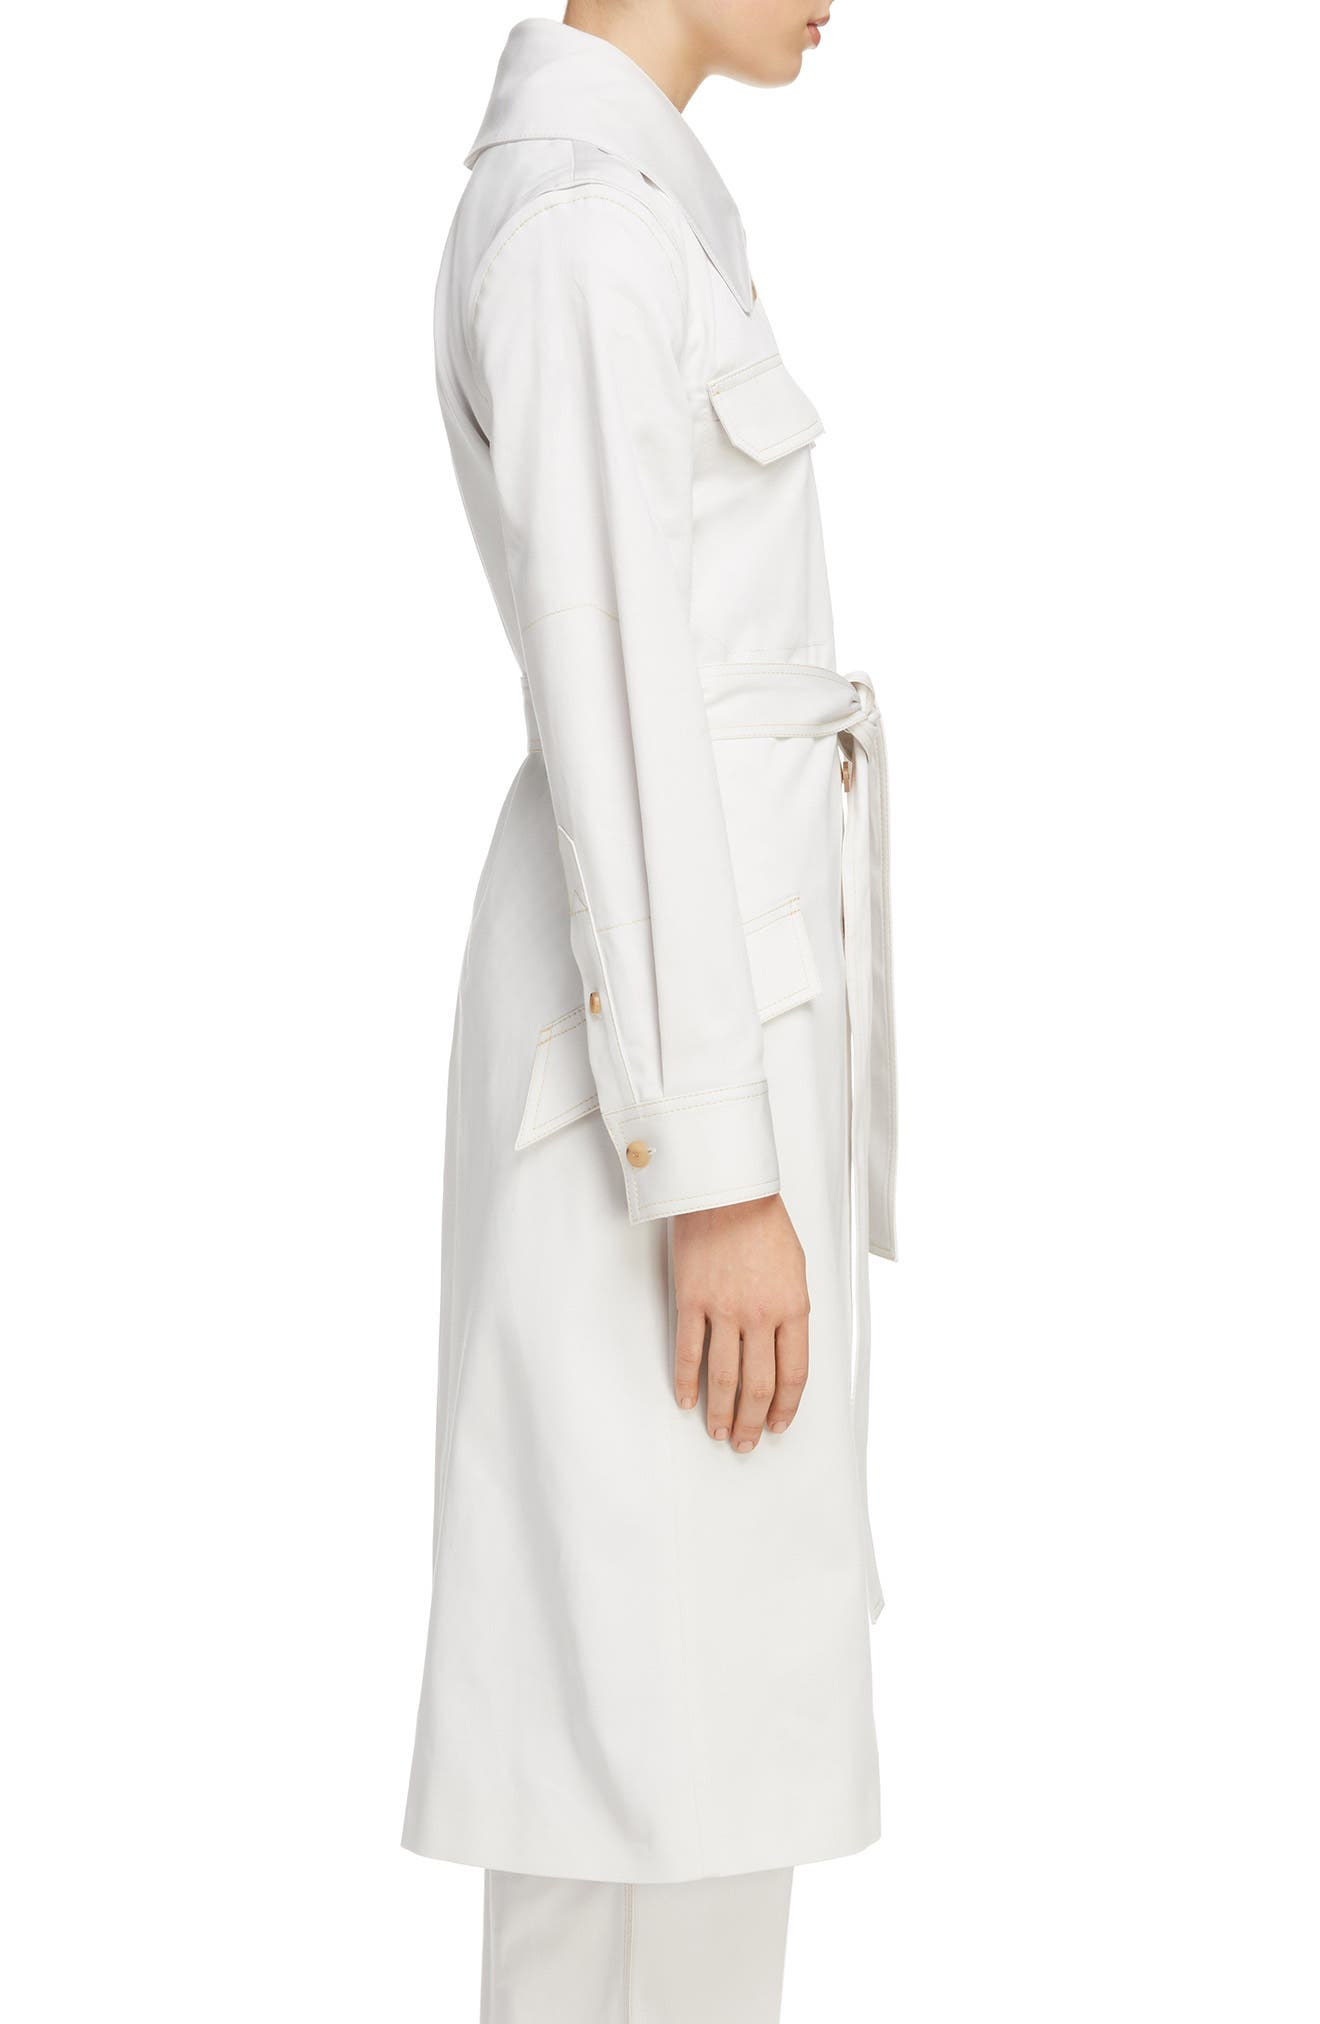 Olesia Removable Sleeve Belted Coat,                             Alternate thumbnail 3, color,                             Dirty White